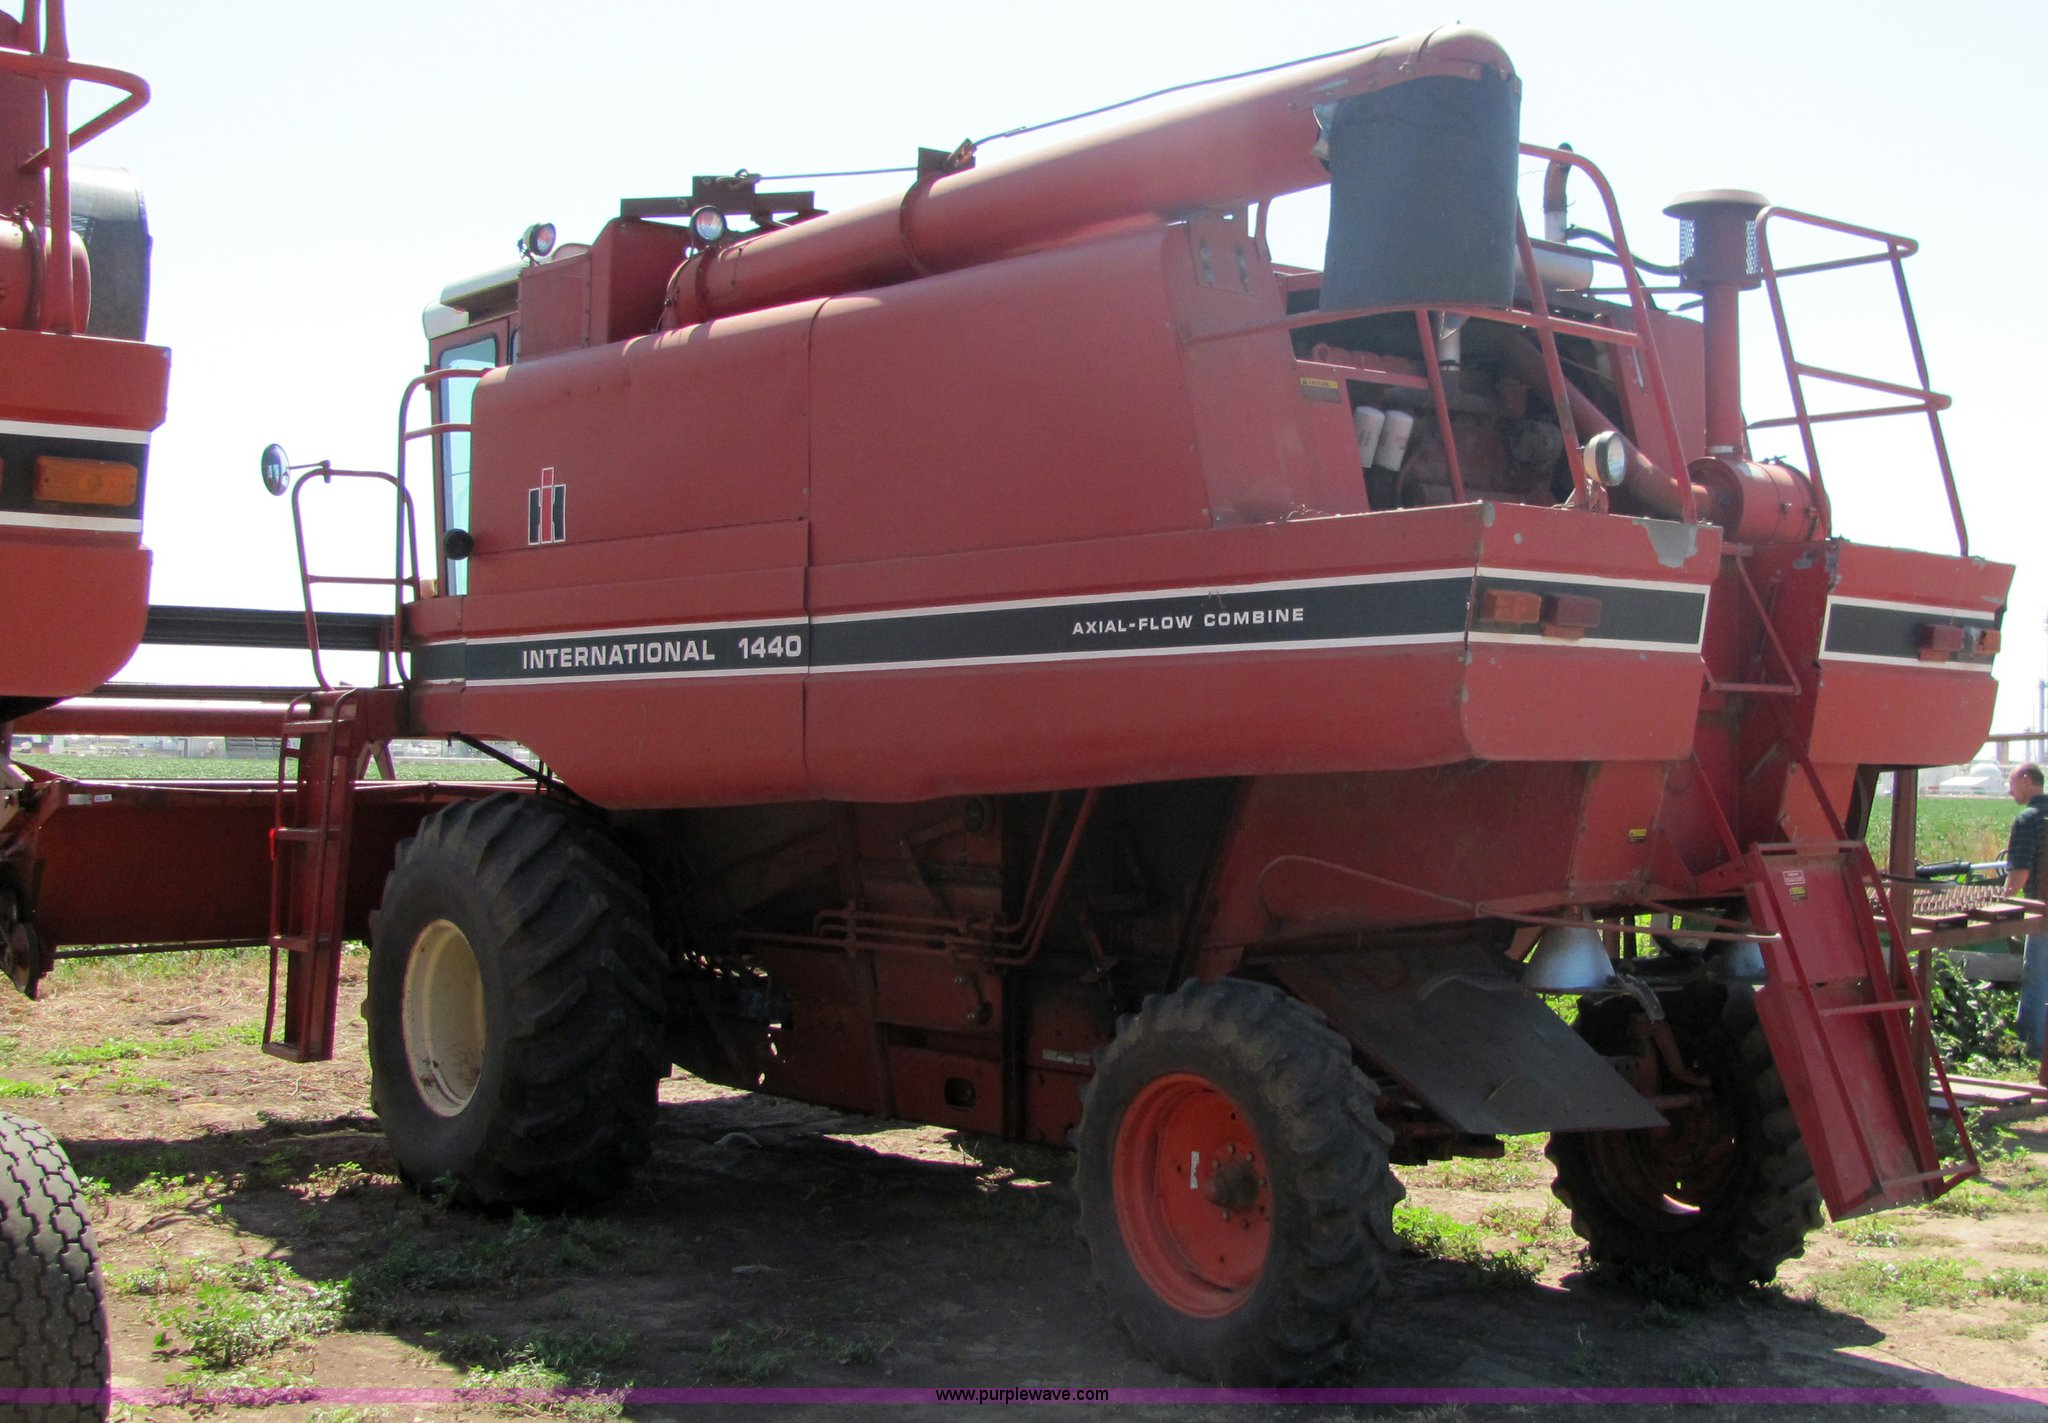 ... 1979 International 1440 axial flow combine Full size in new window ...